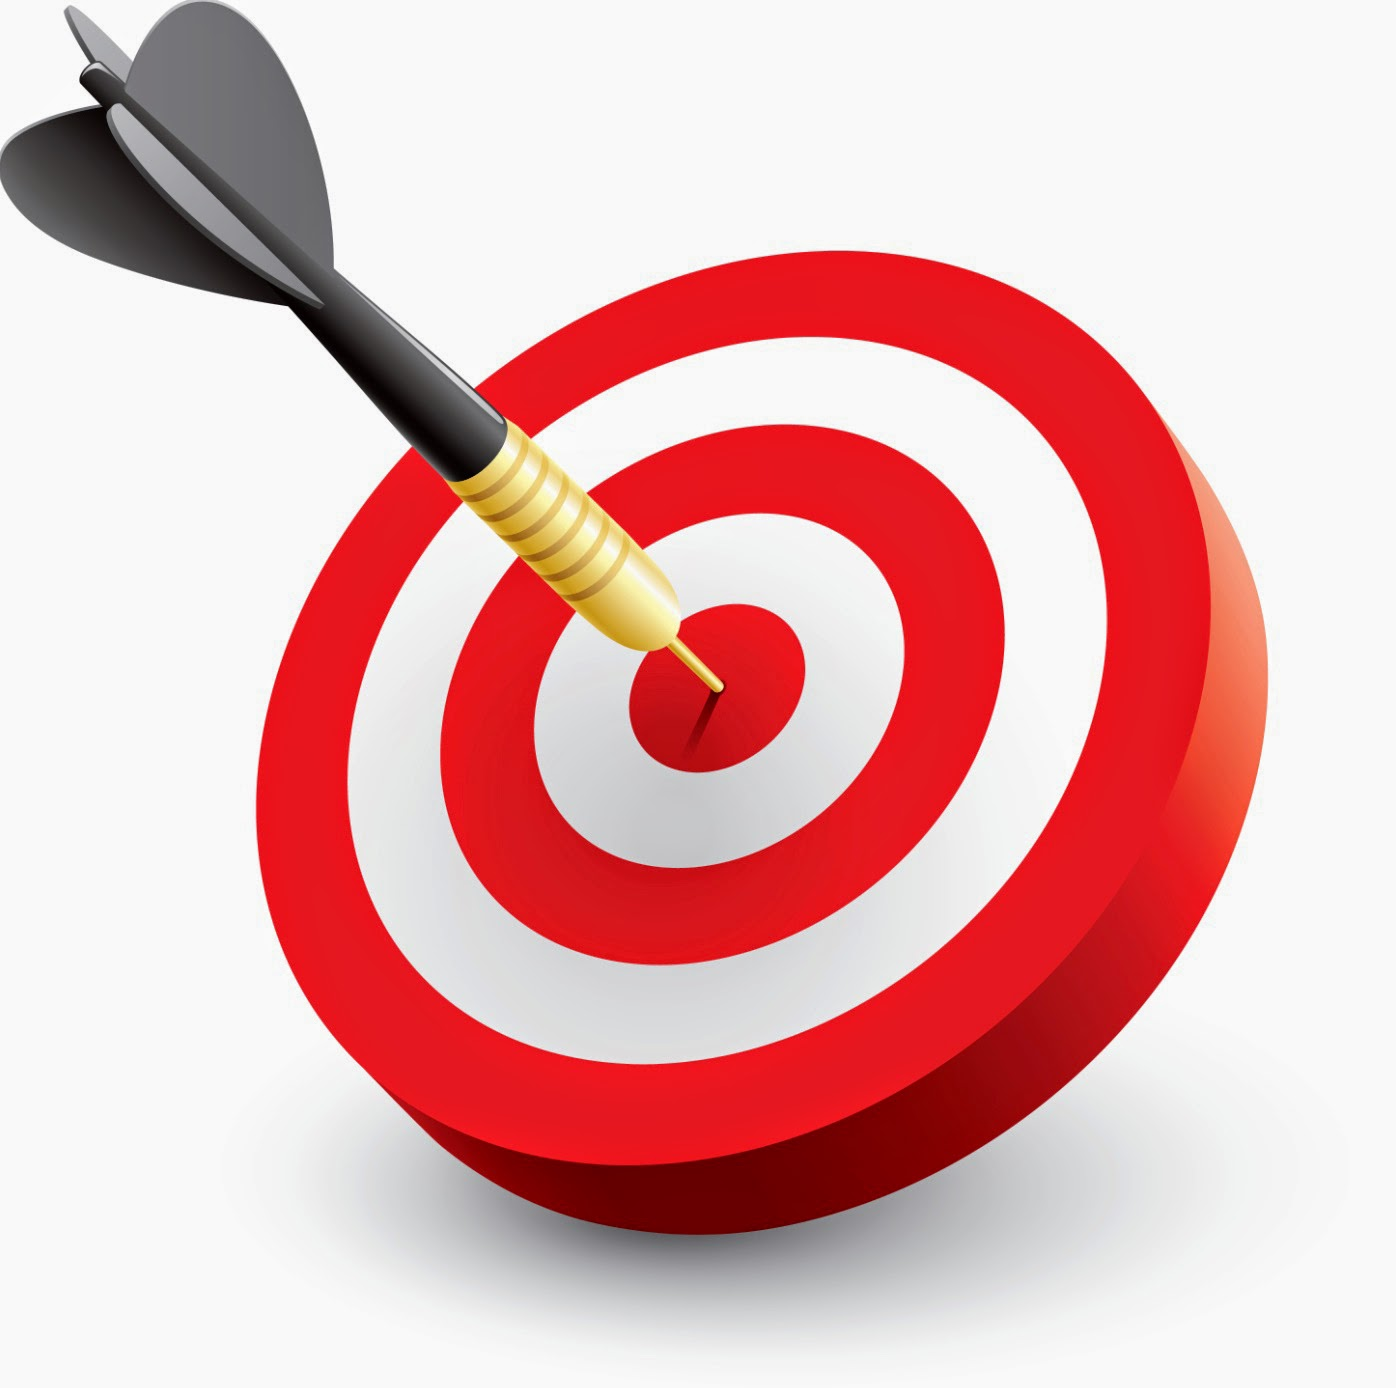 Hits clipart vector royalty free stock Free Bullseye, Download Free Clip Art, Free Clip Art on ... vector royalty free stock